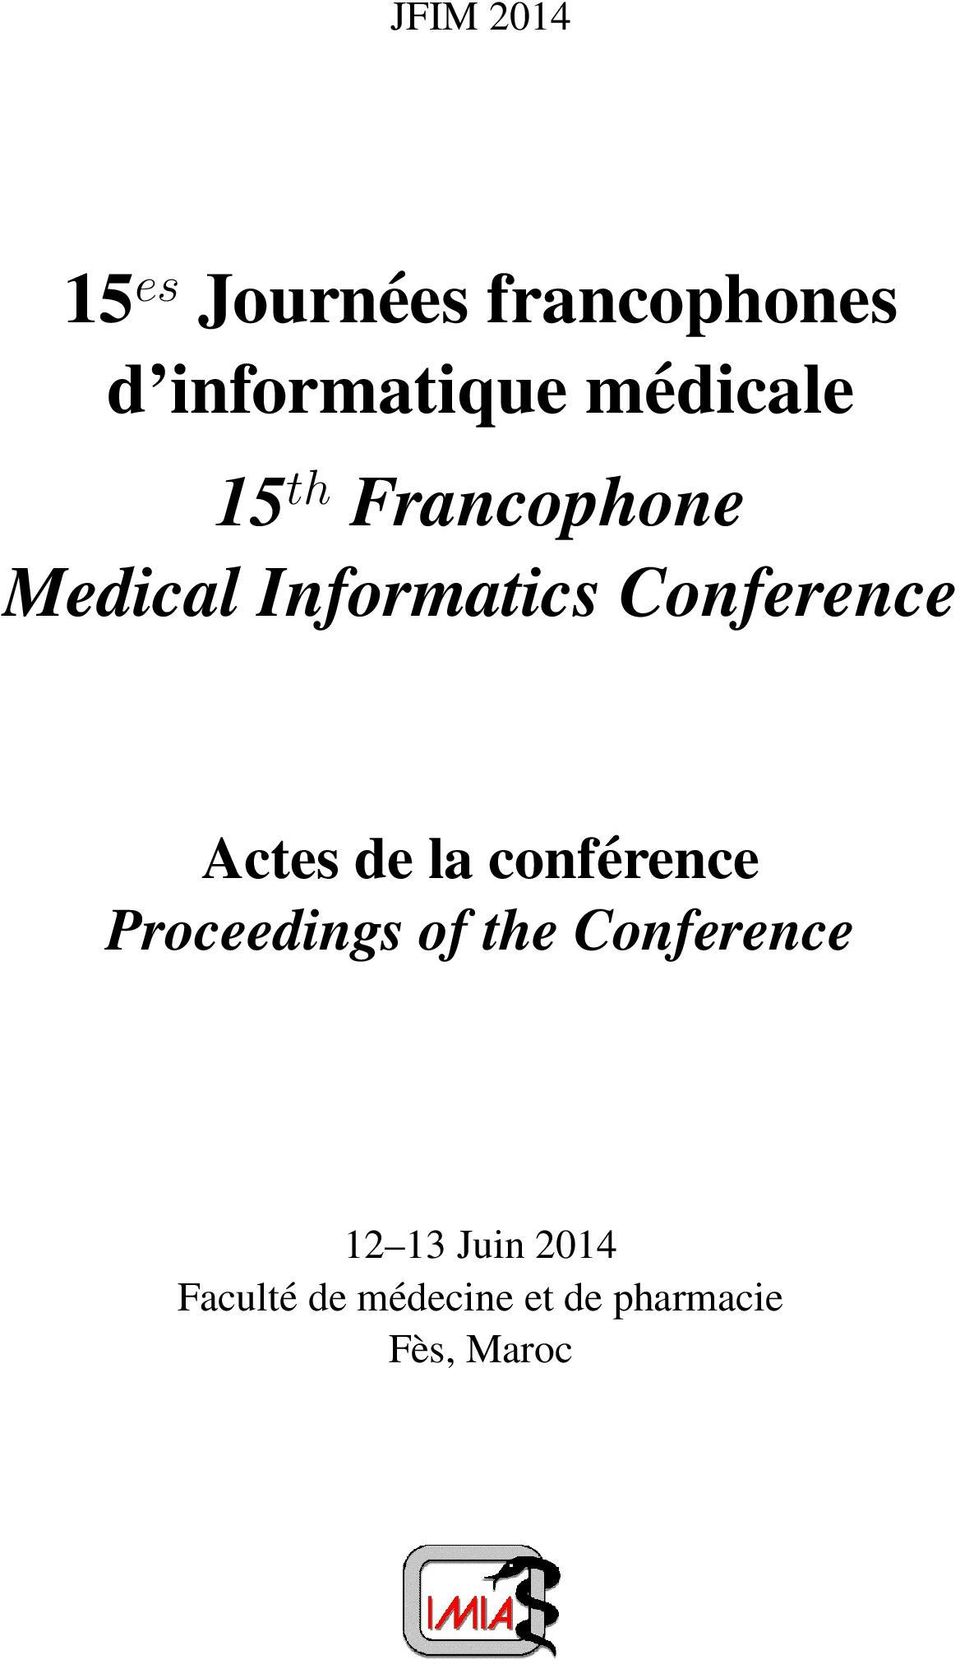 Conference Actes de la conférence Proceedings of the